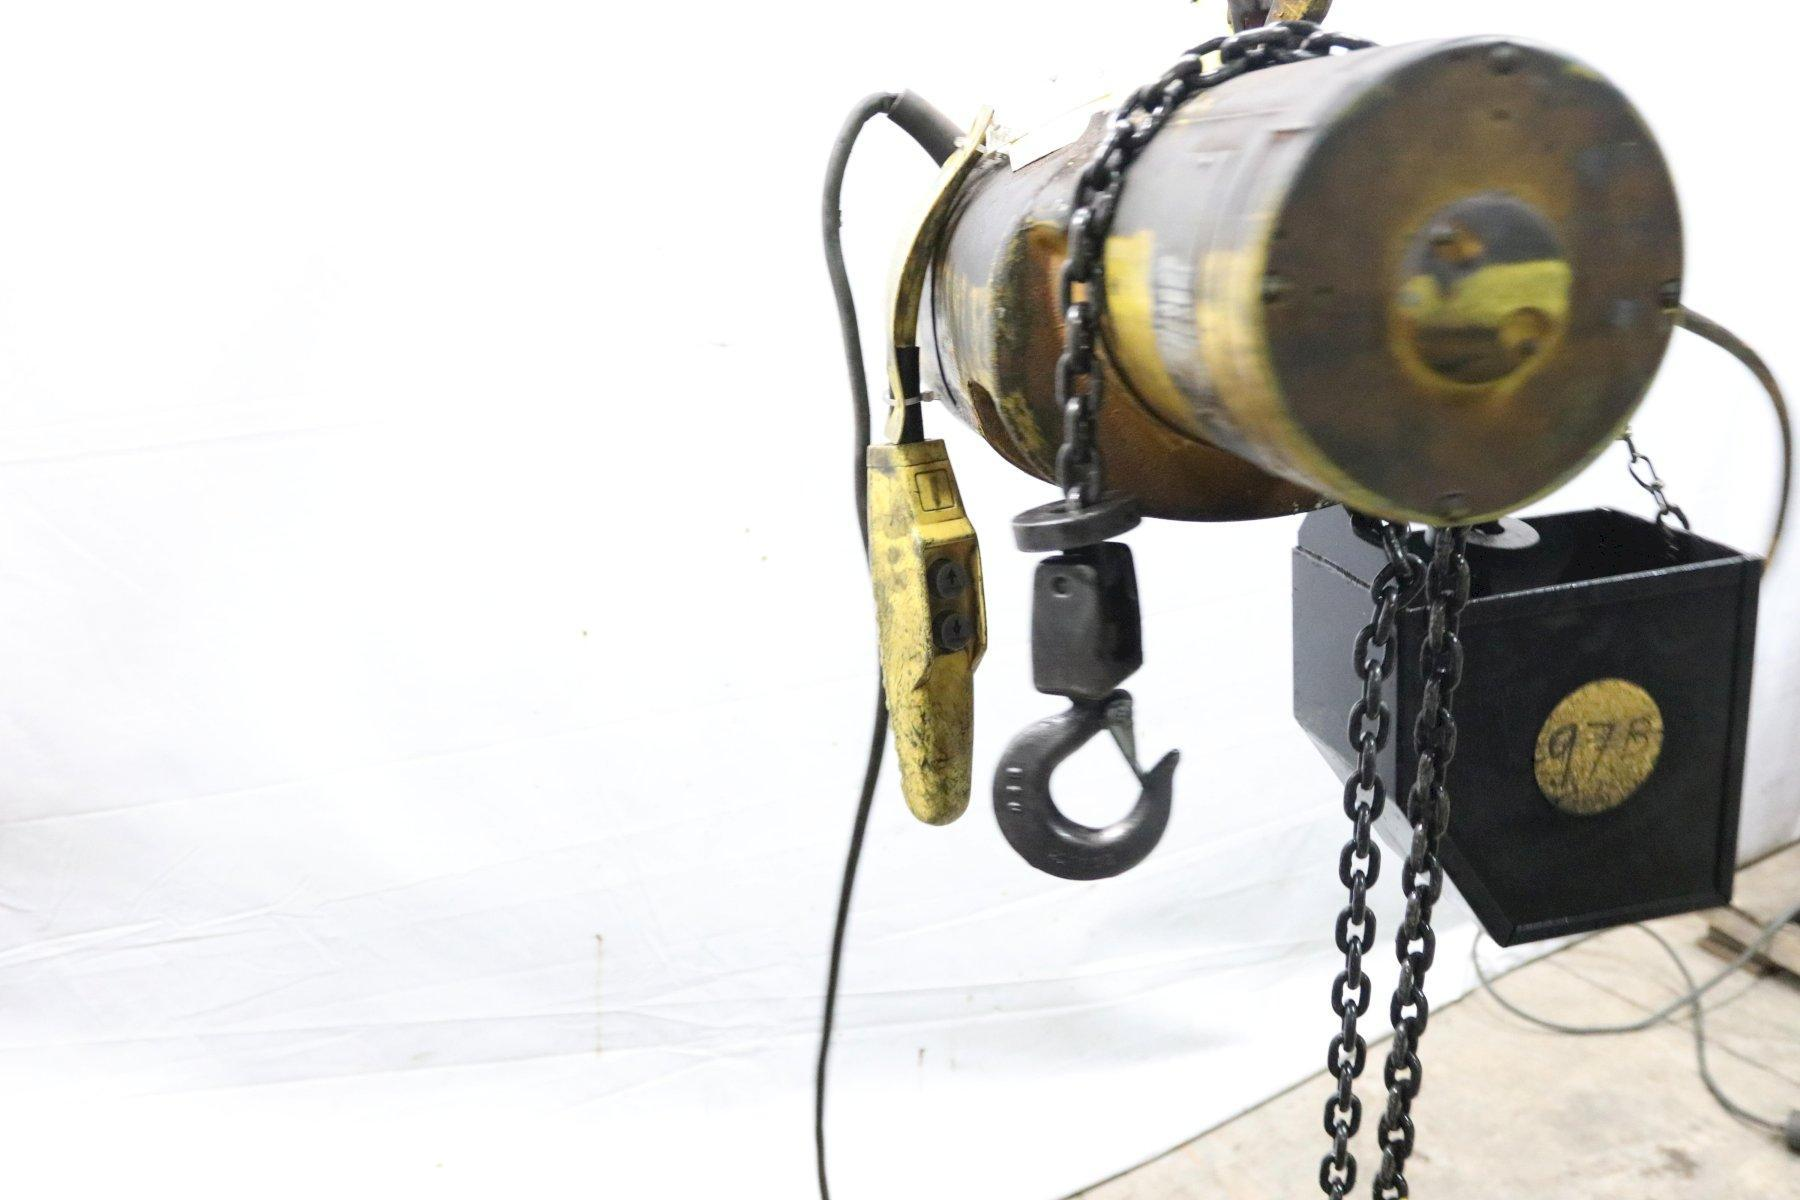 500 LB BUDGIT ELECTRIC POWERED CHAIN HOIST: STOCK #11972